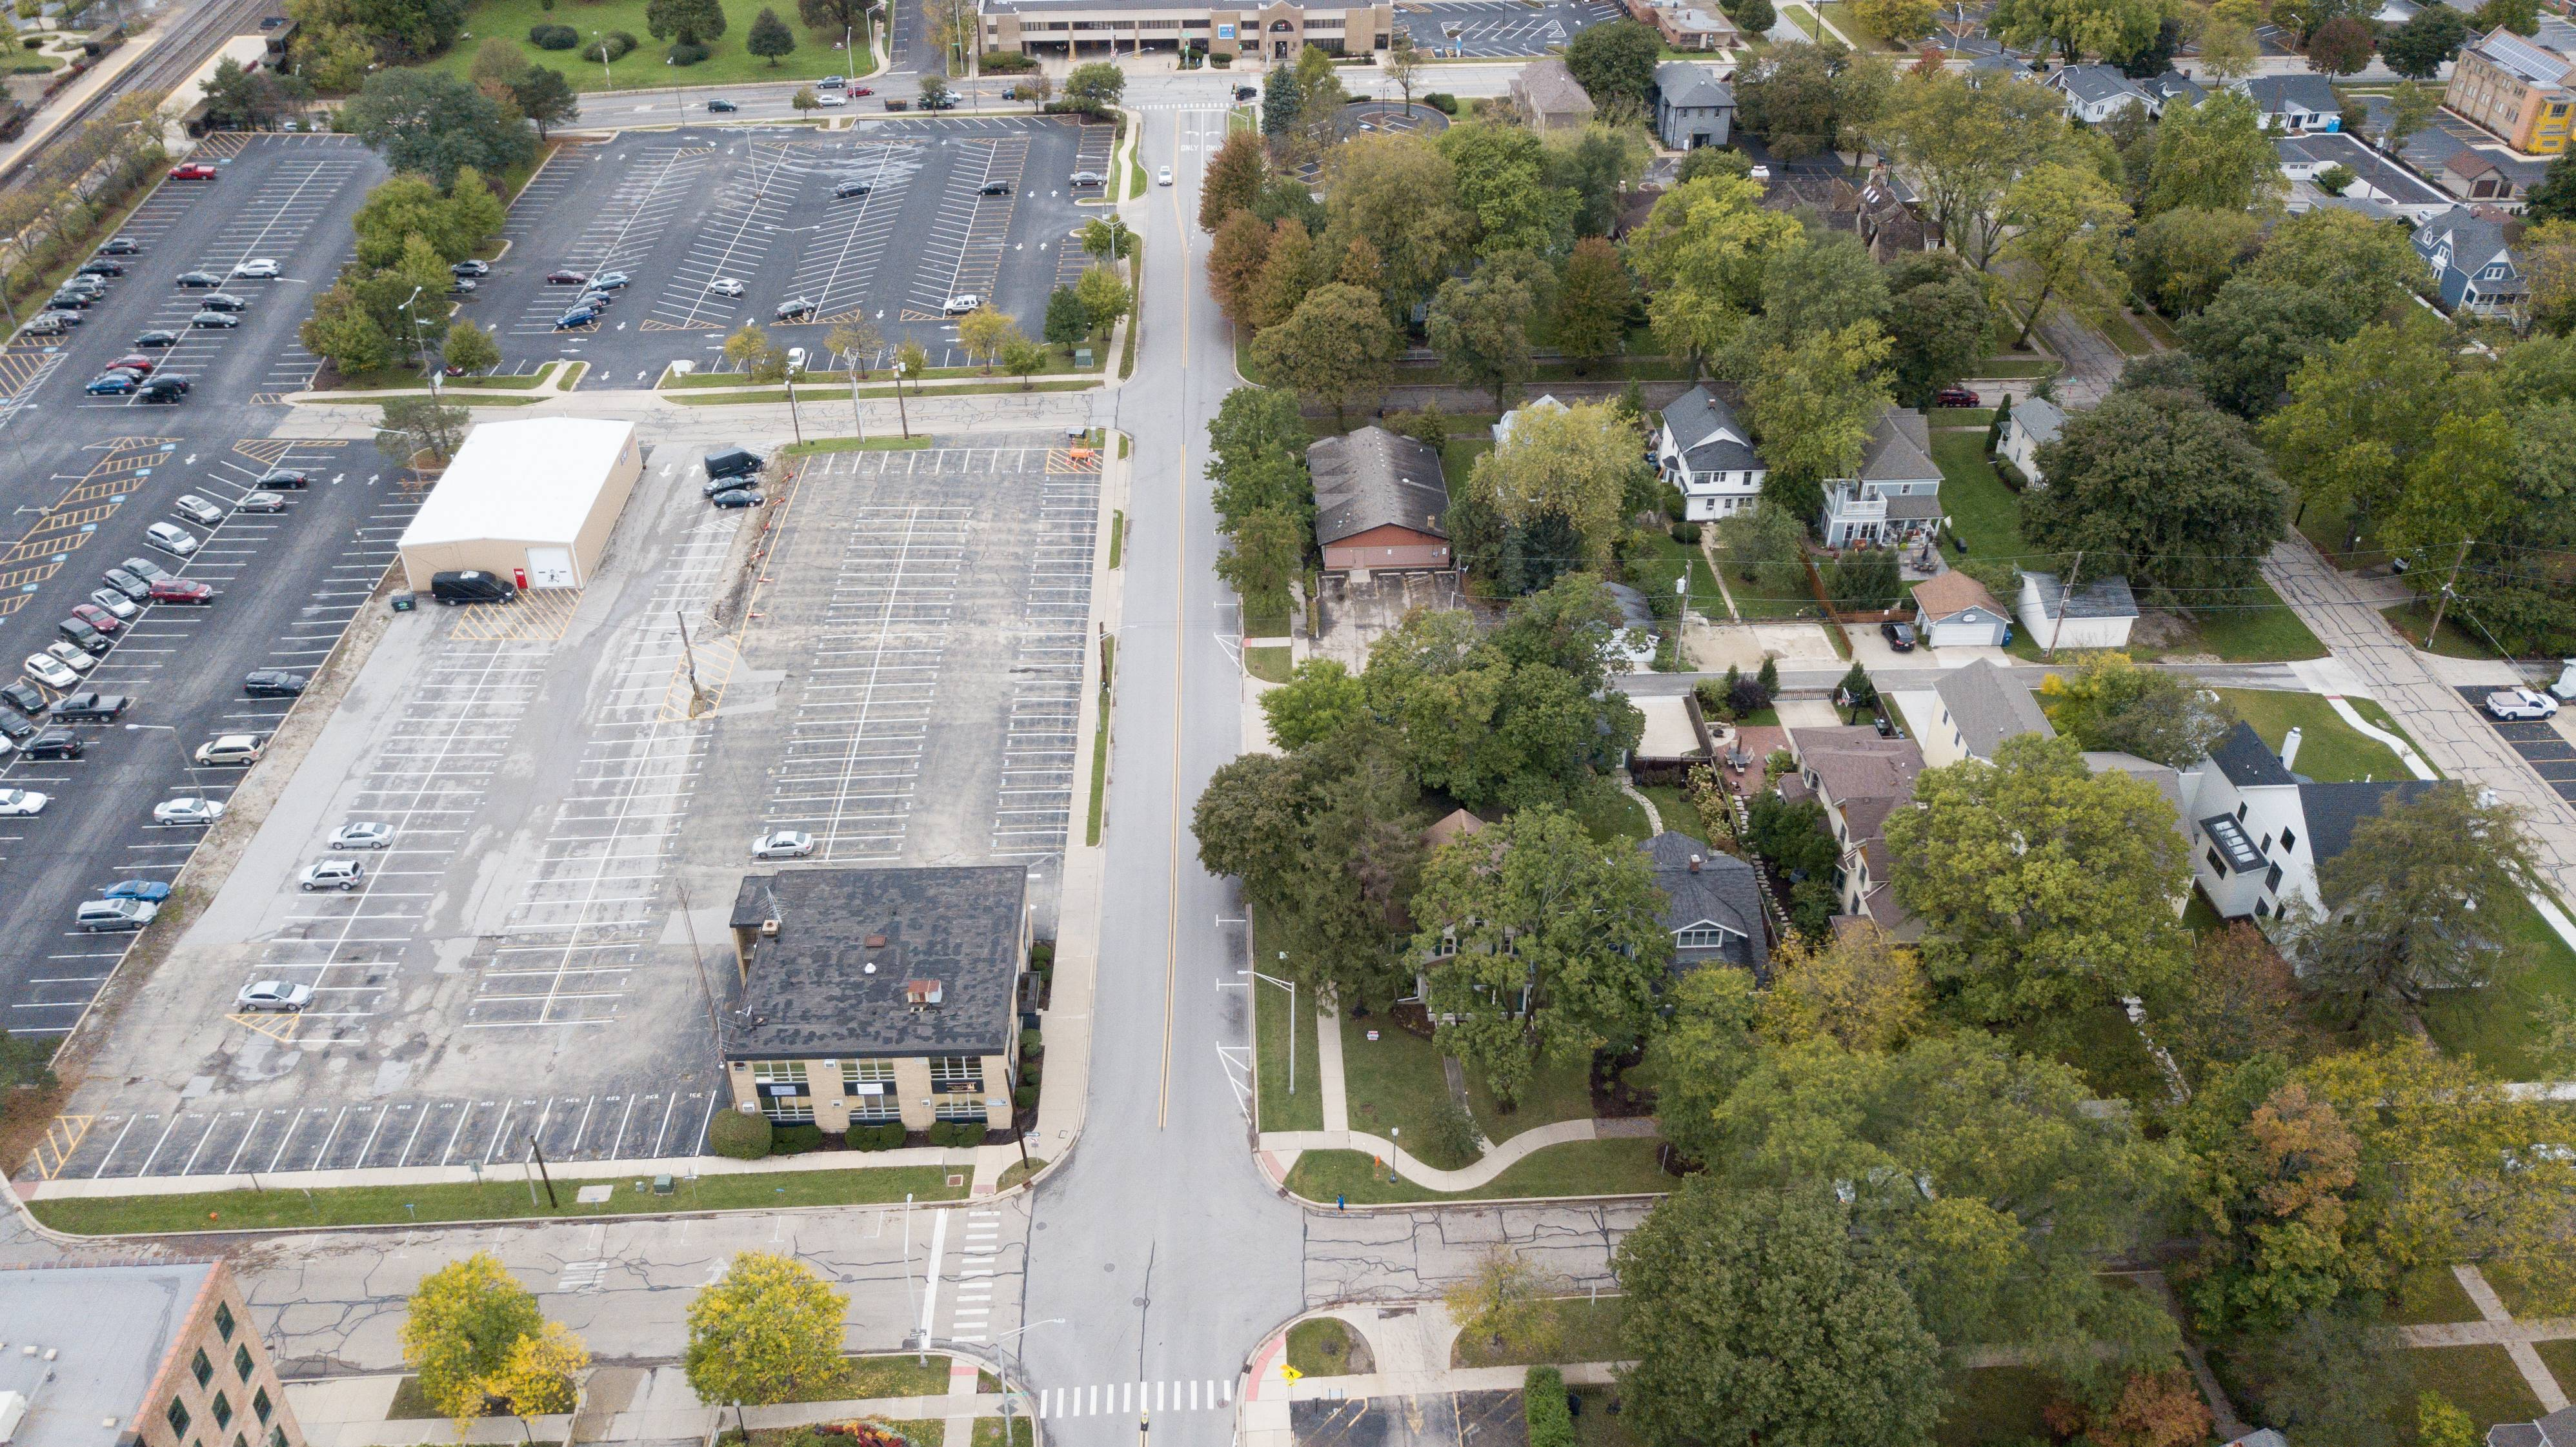 When 13 acres of city-owned land along 5th Avenue near the Metra station in Naperville is redeveloped, the city's housing advisory commission recommends 20 percent of all residences built meet the Illinois Housing Development Authority's definition of affordable housing.